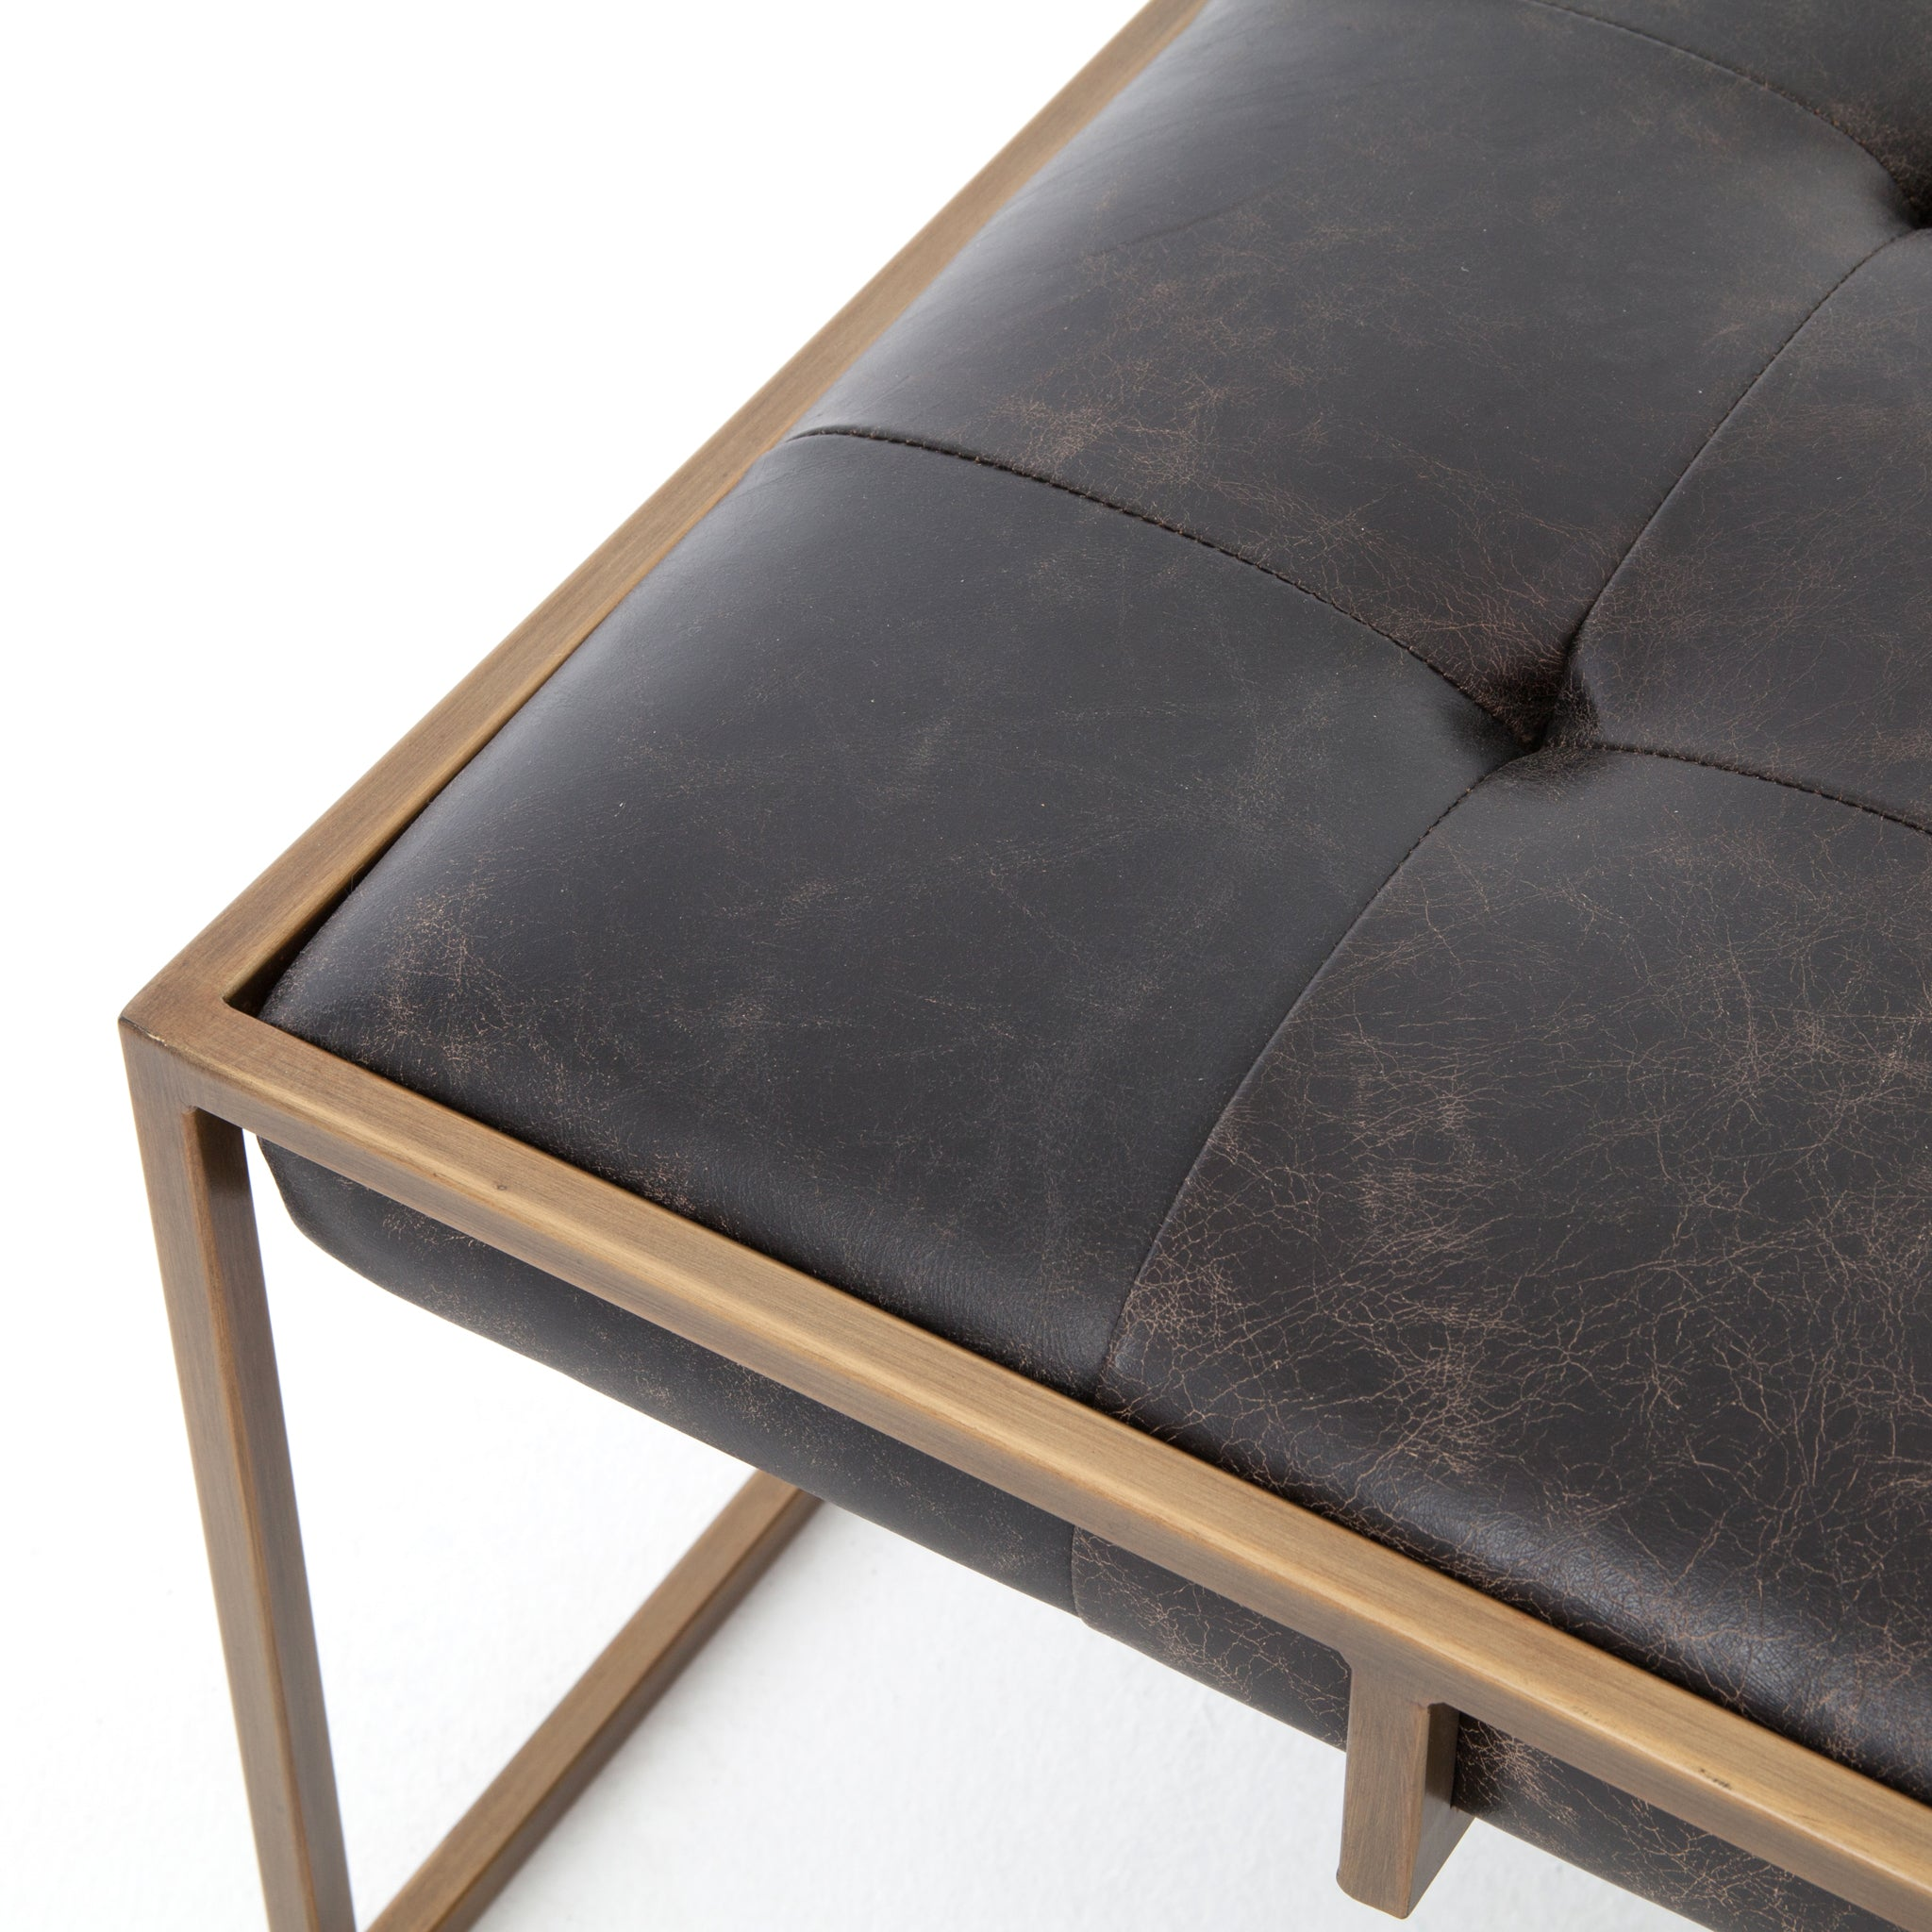 Top Grain Ebony Leather Square Cocktail Ottoman - Furniture on Main